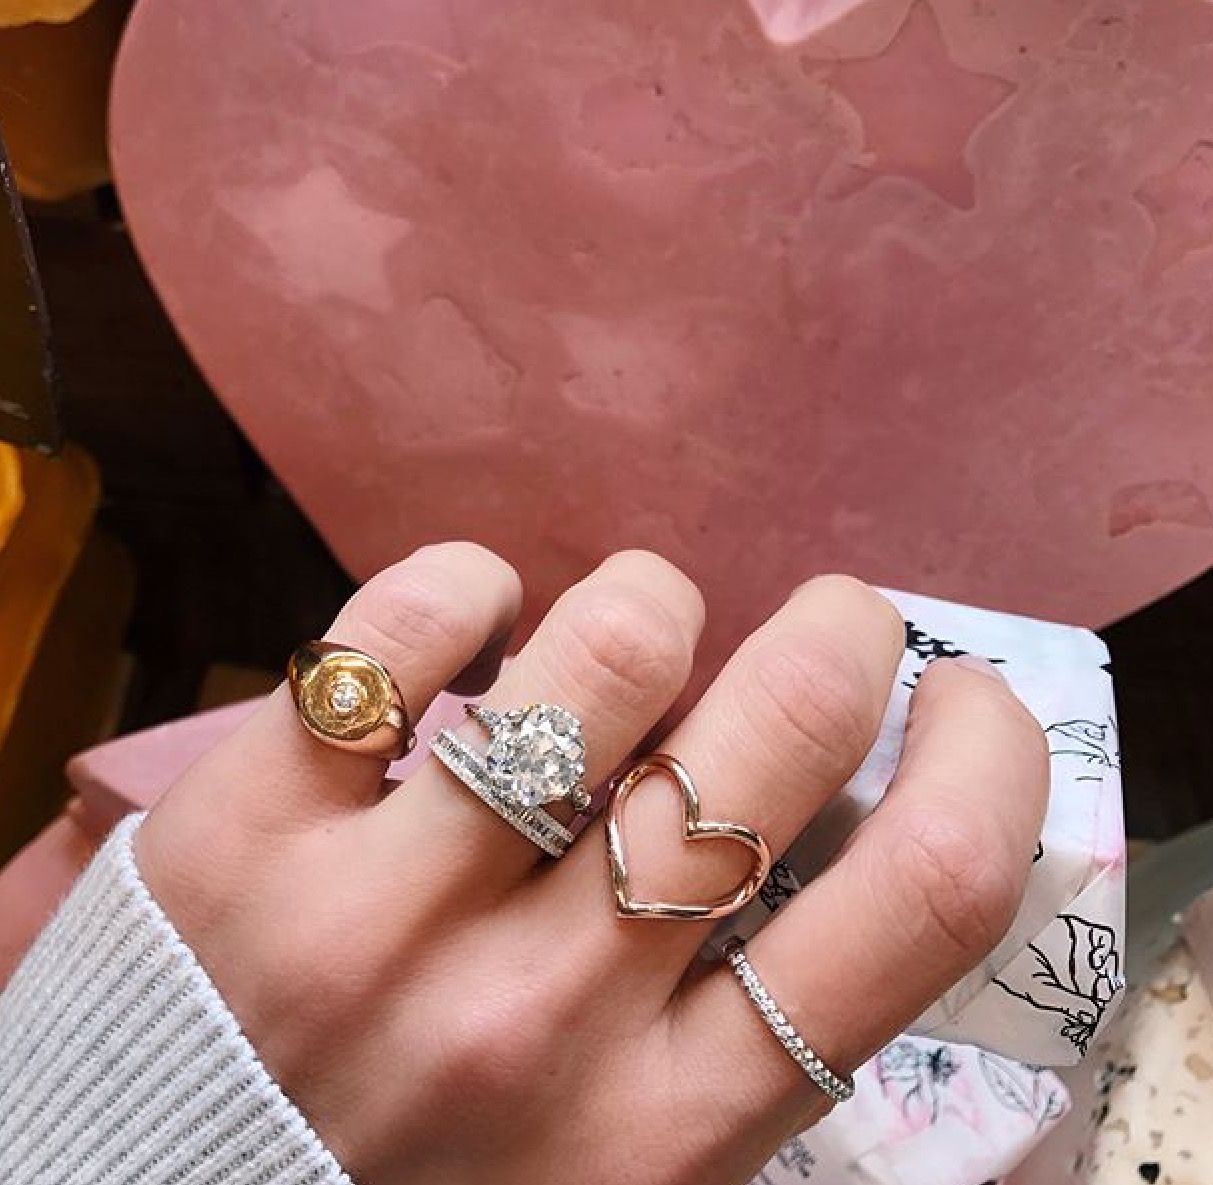 Pin by Sam Elberg on Rings and Jewels | Pinterest | Jewel and Ring